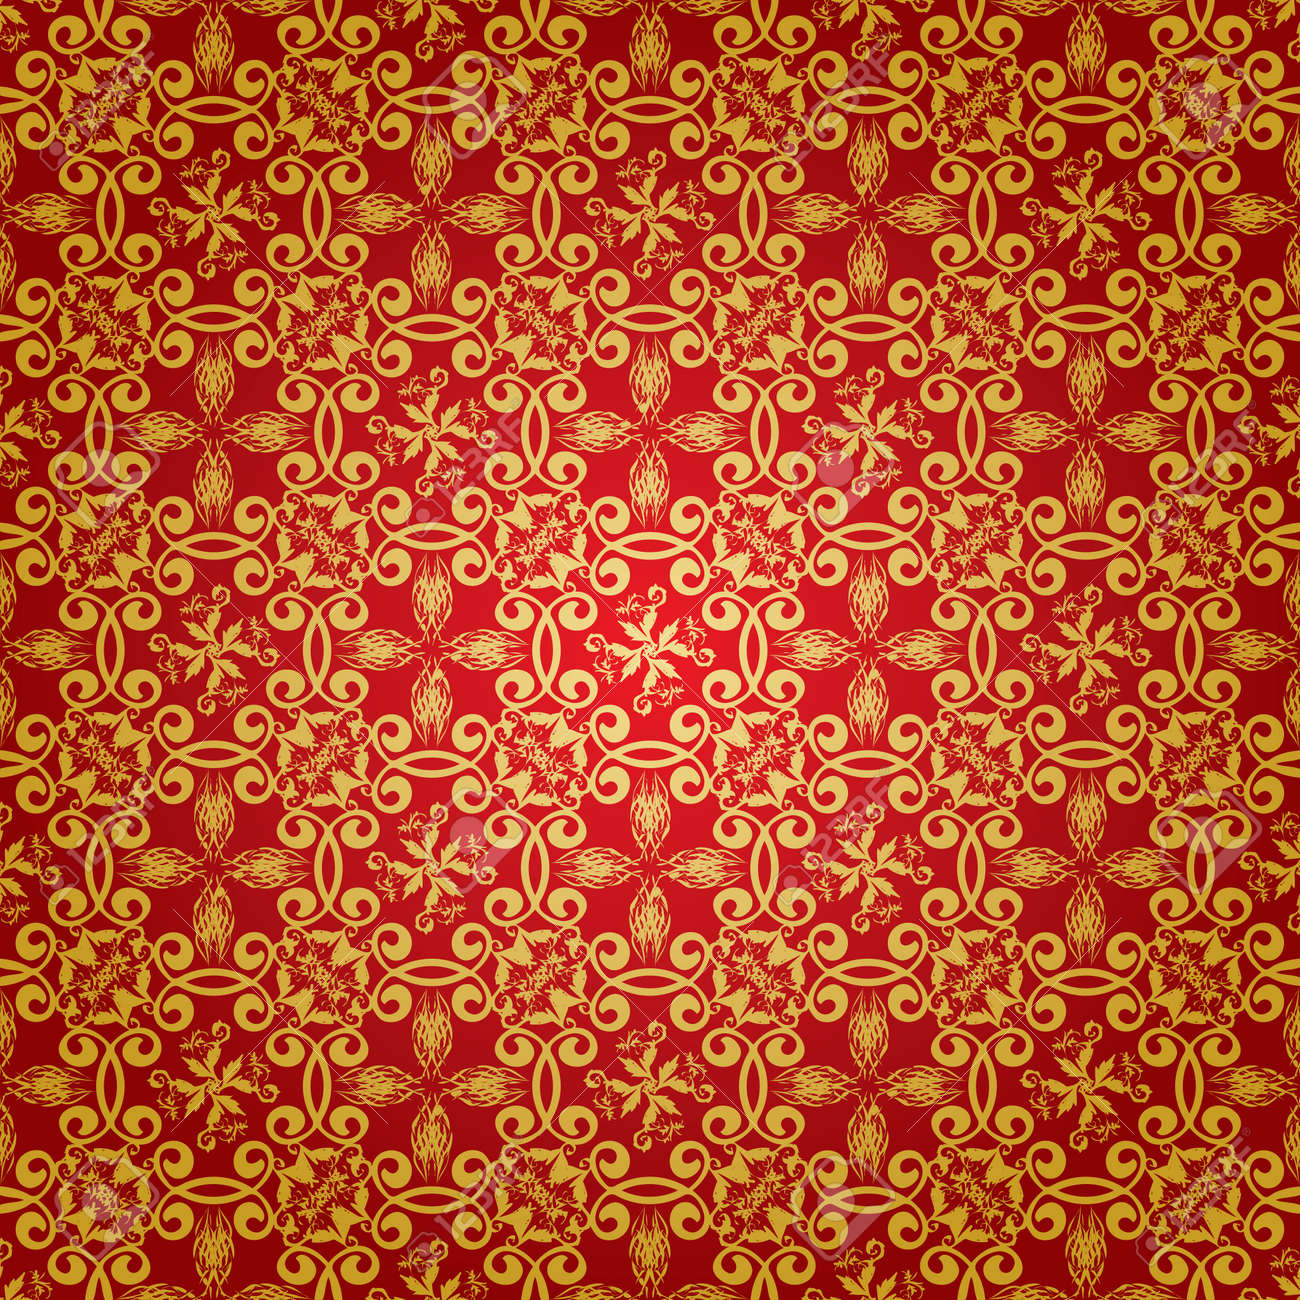 Wallpaper design in red and gold that seamlessly repeats Stock Vector - 3278578